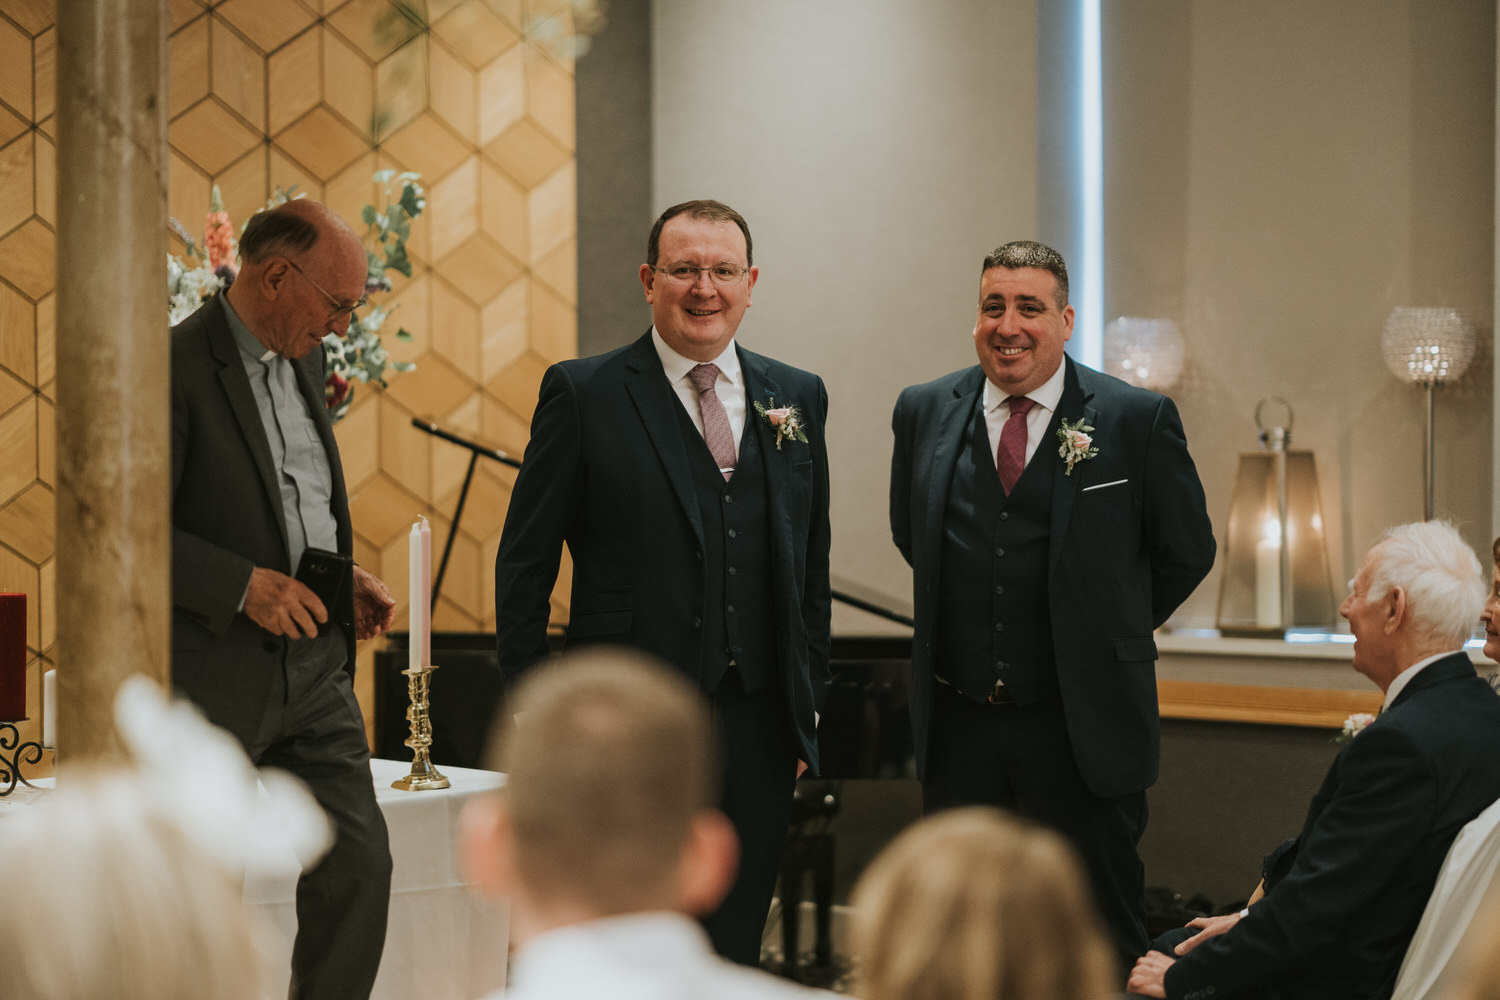 Wedding photos at Ten Square Hotel Belfast 30